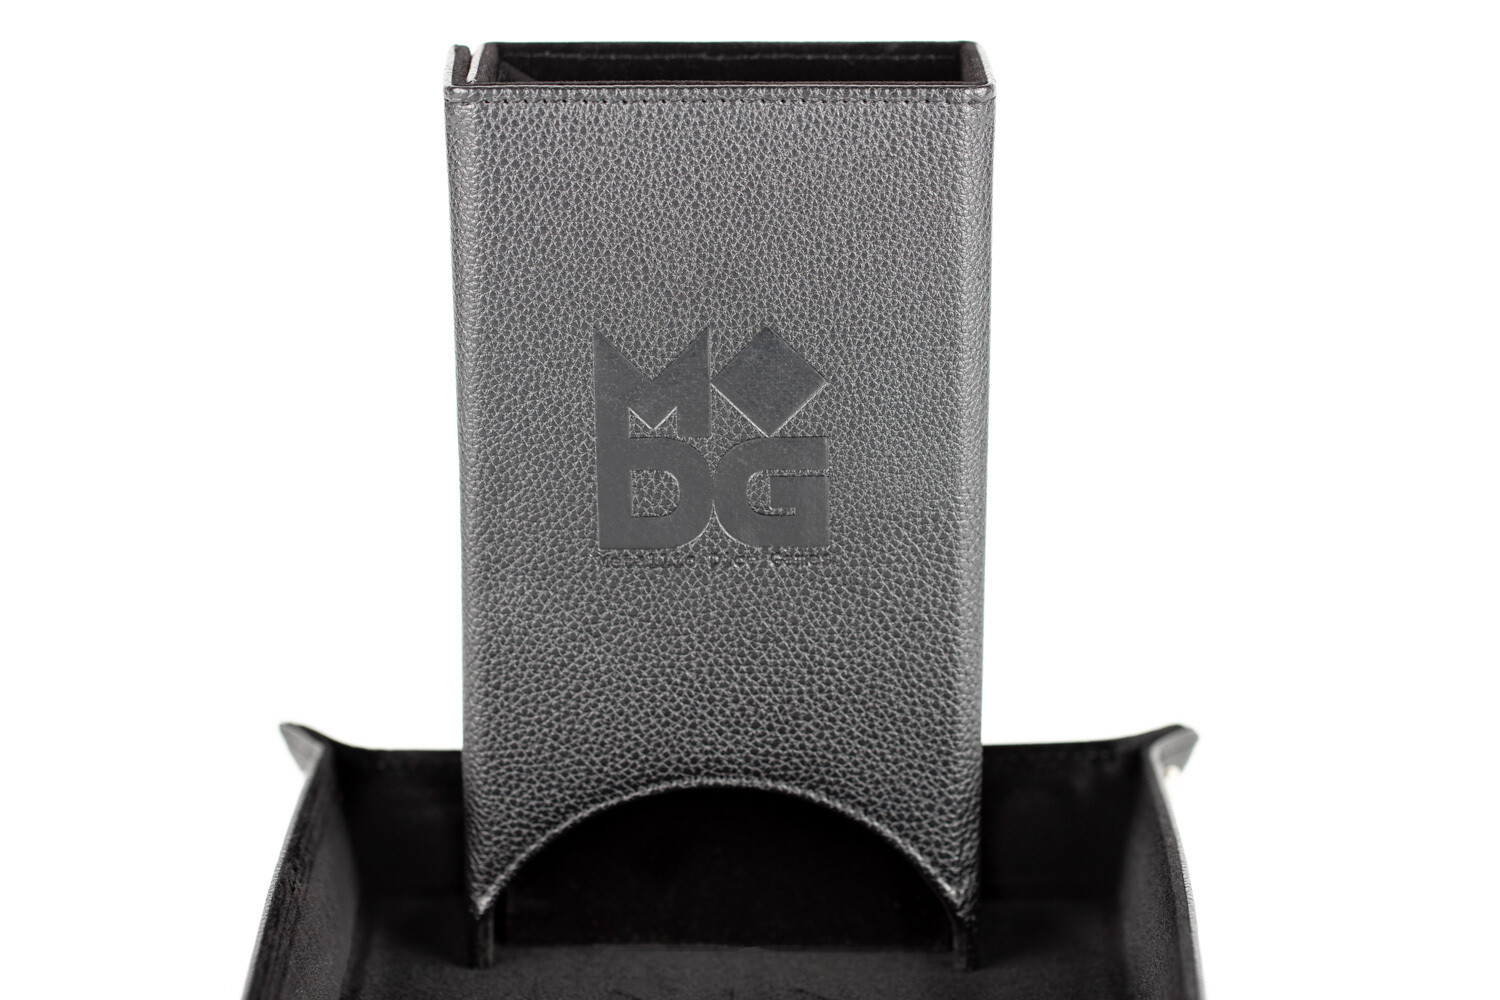 Fold Up Dice Tower For Polyhedral Gaming Dice RPG Role Play Black Leather